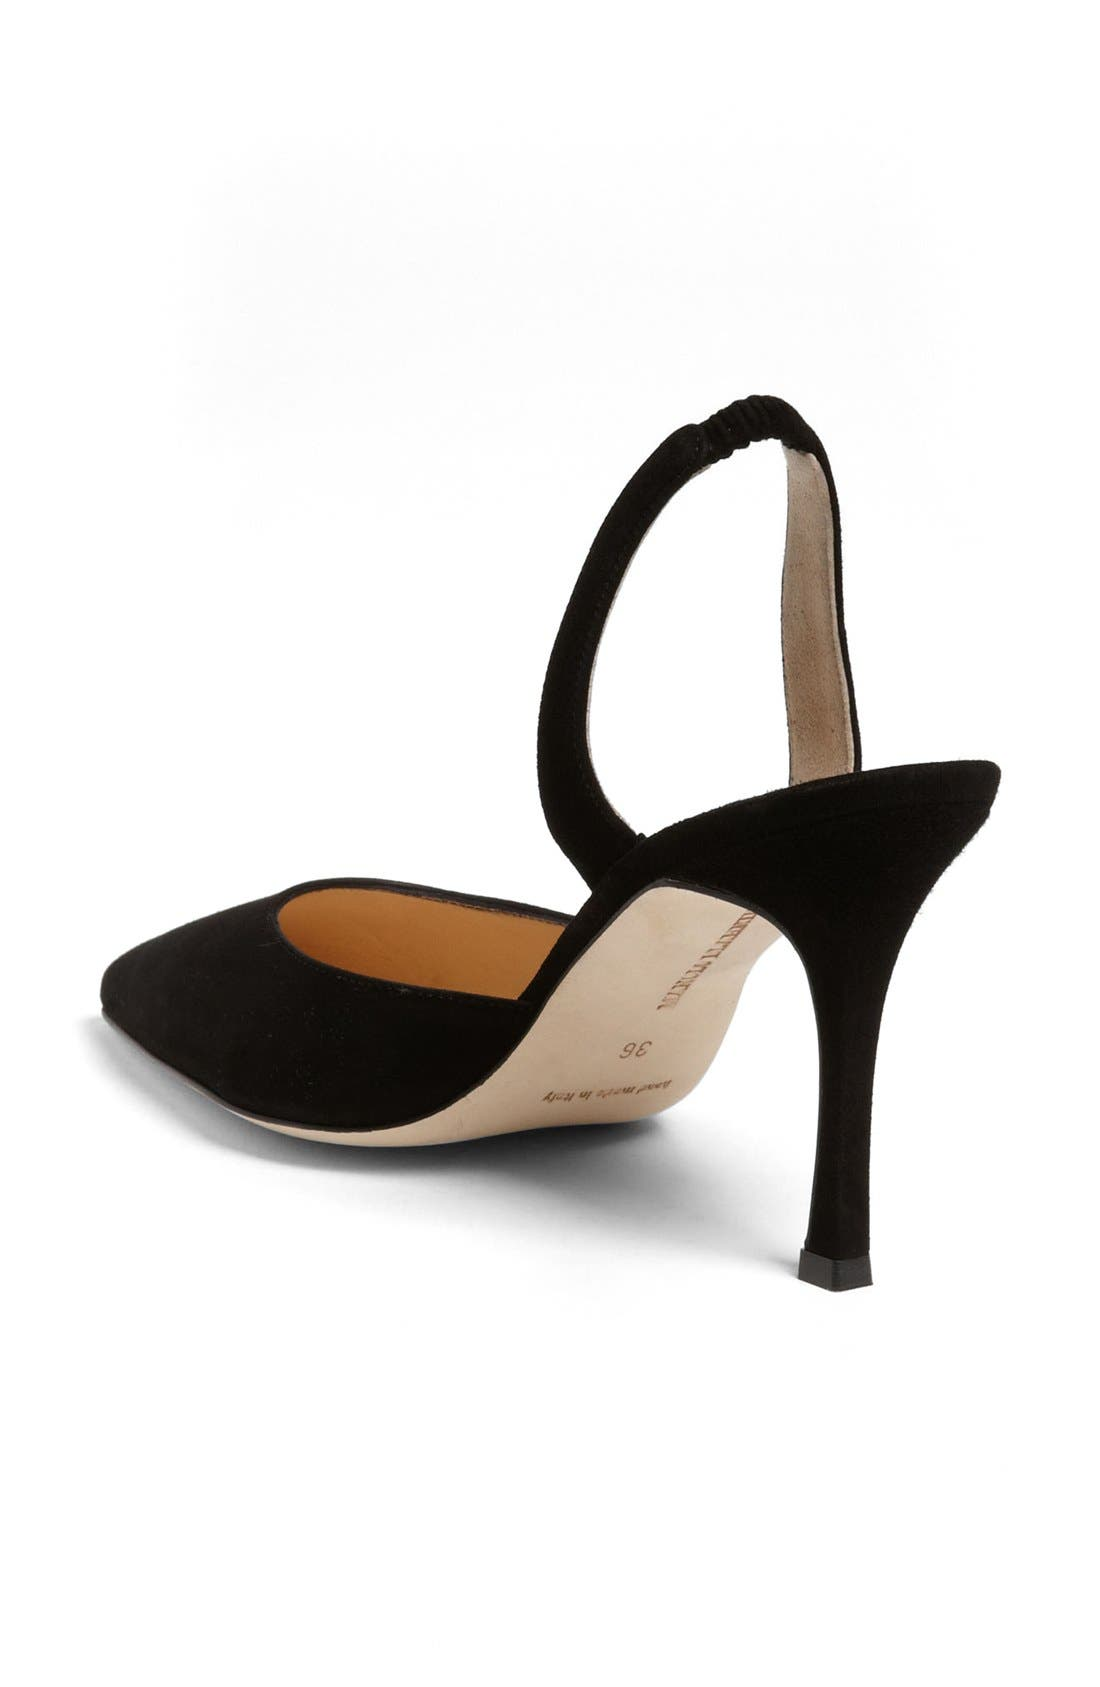 Alternate Image 2  - Manolo Blahnik 'Carolyne' Slingback Pump (Women)